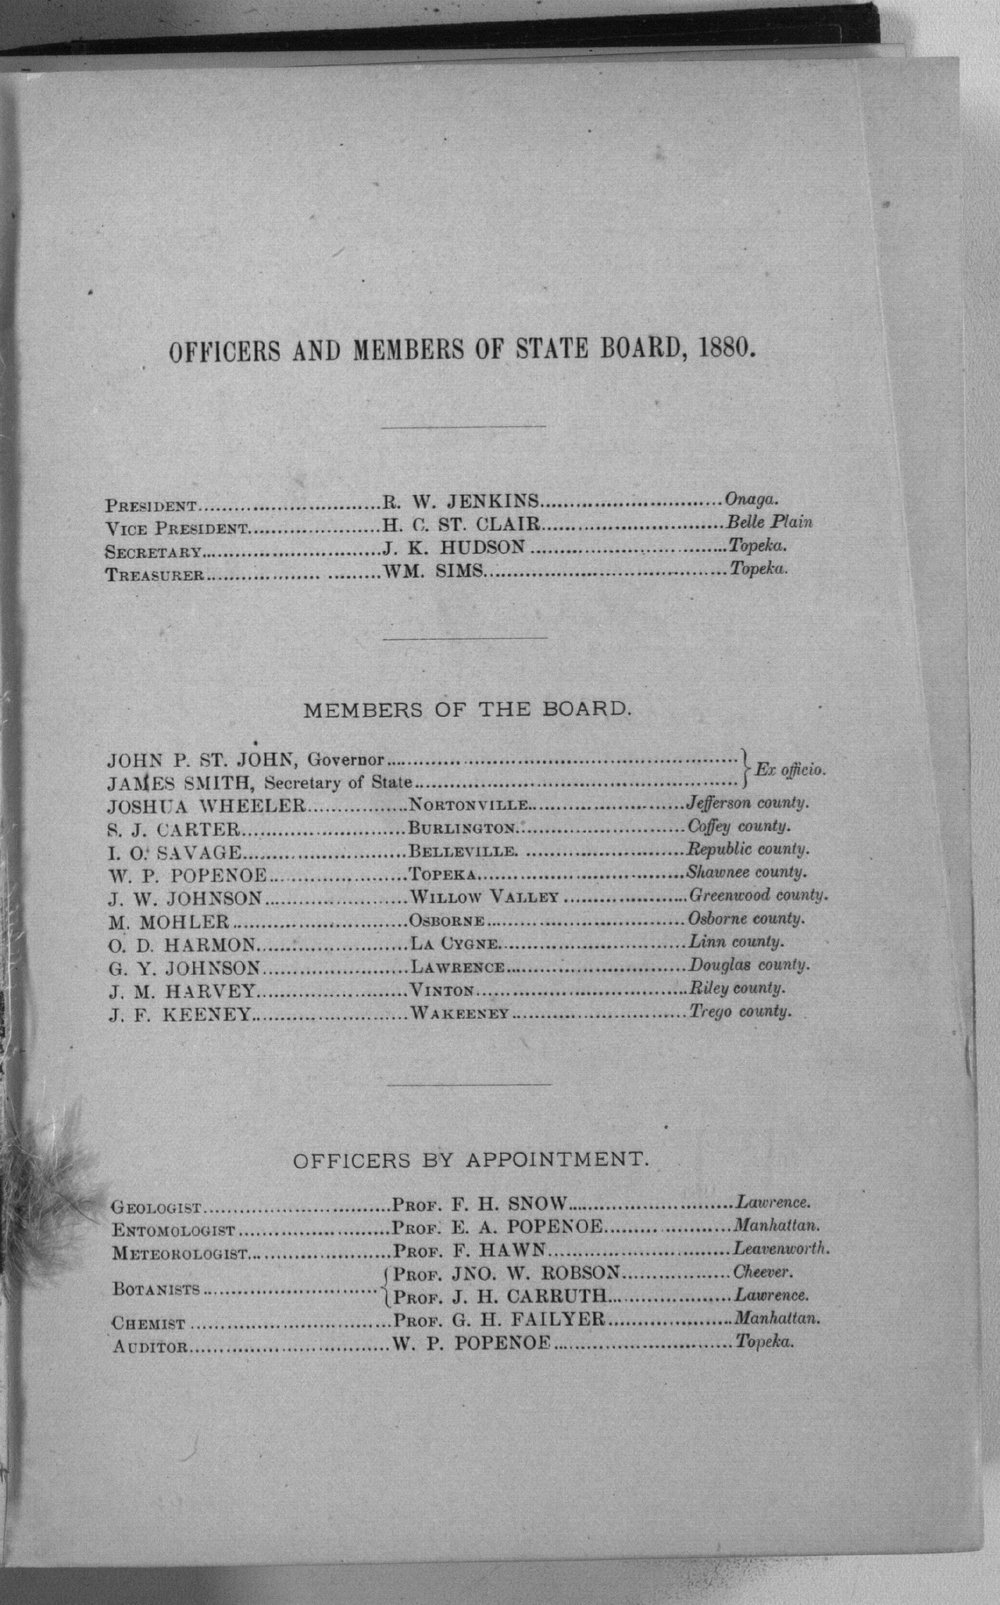 Second biennial report of the Kansas State Board of Agriculture, 1879-80 - Officers